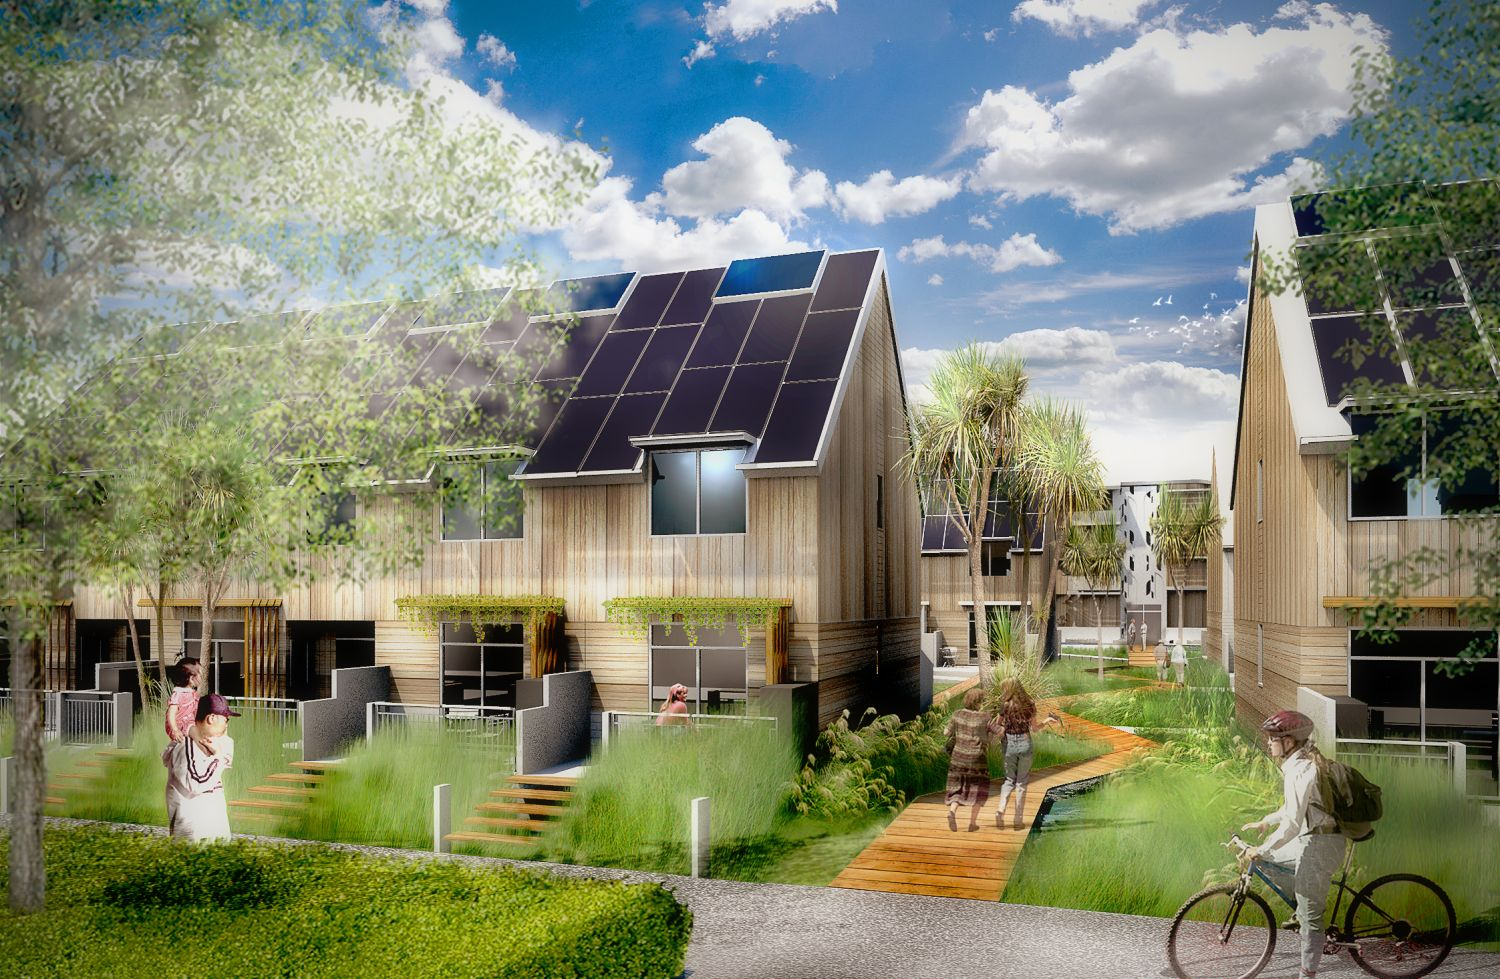 Solar Power to be a part of the Christchurch rebuild